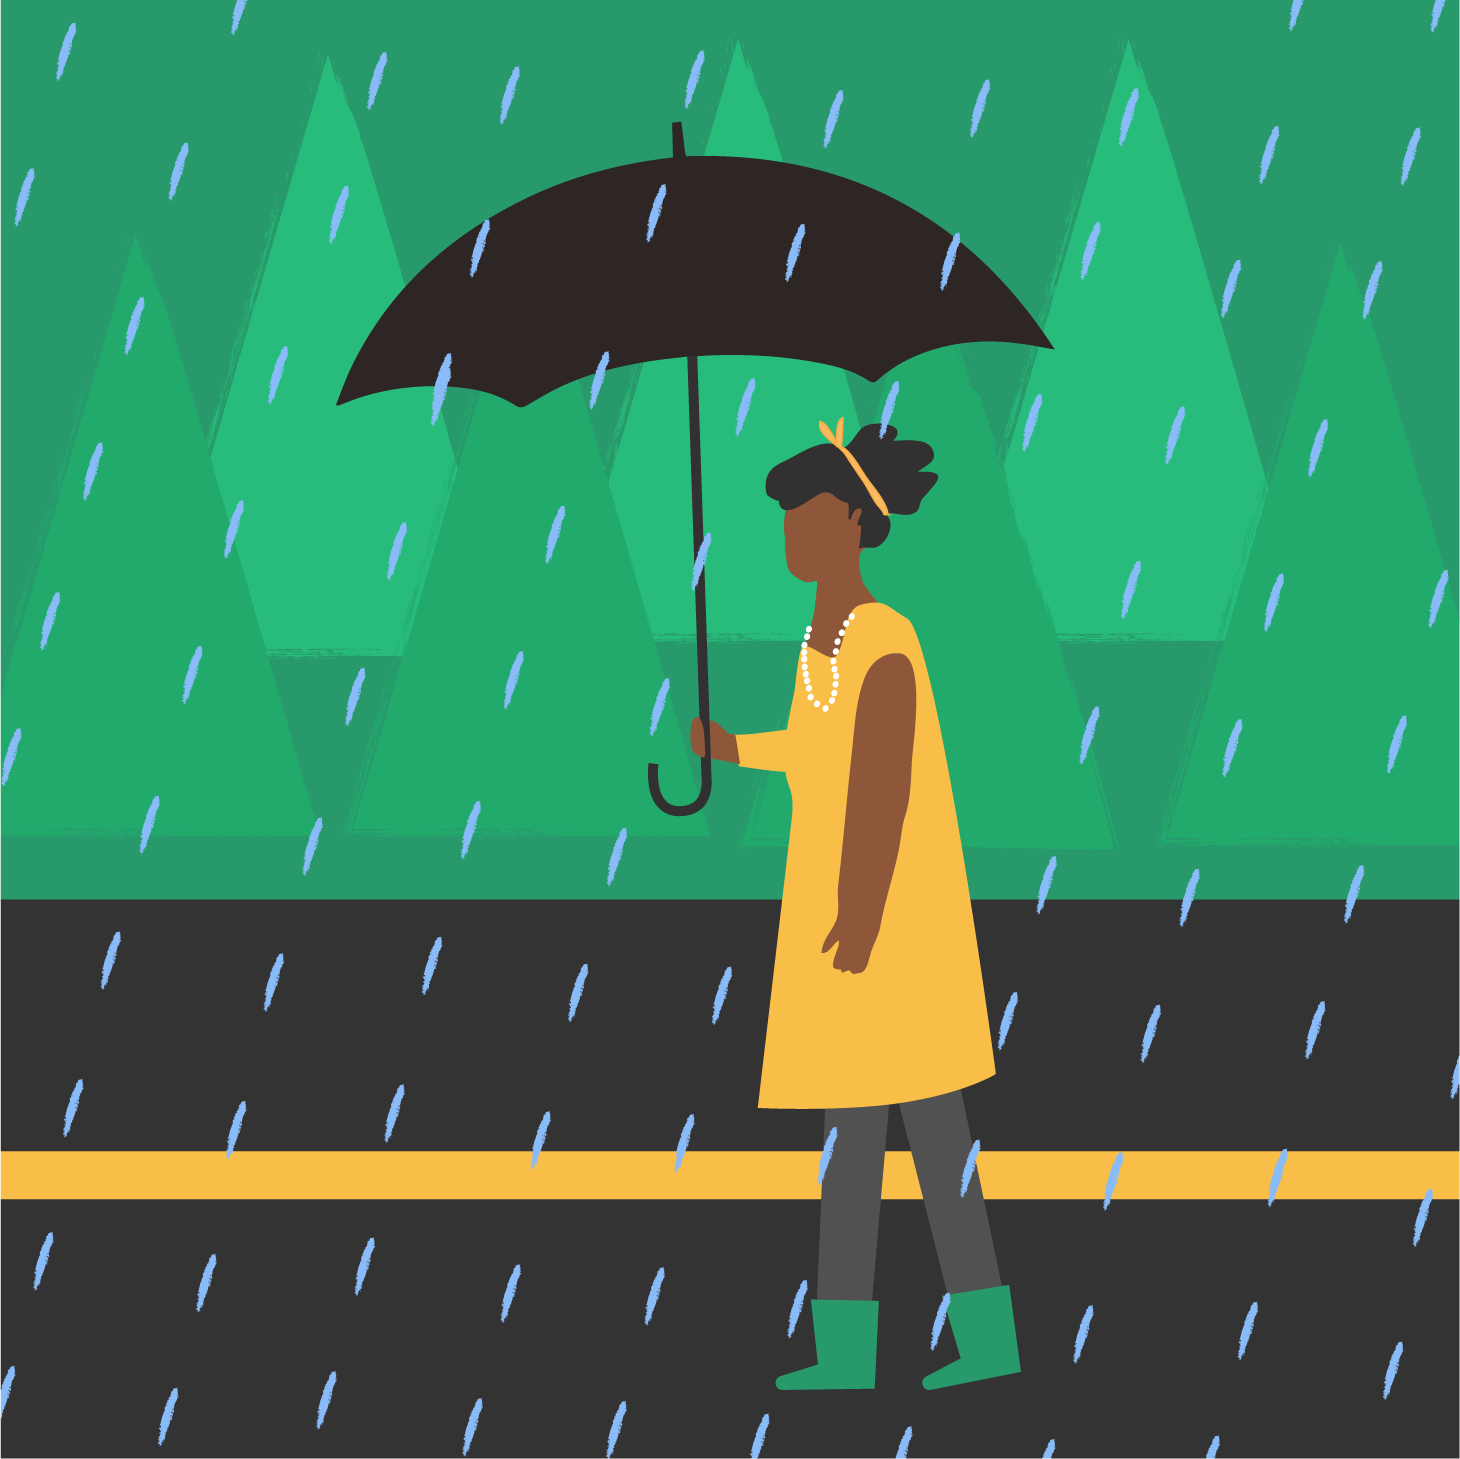 A drawing of Nissa walking in the rain with an umbrella